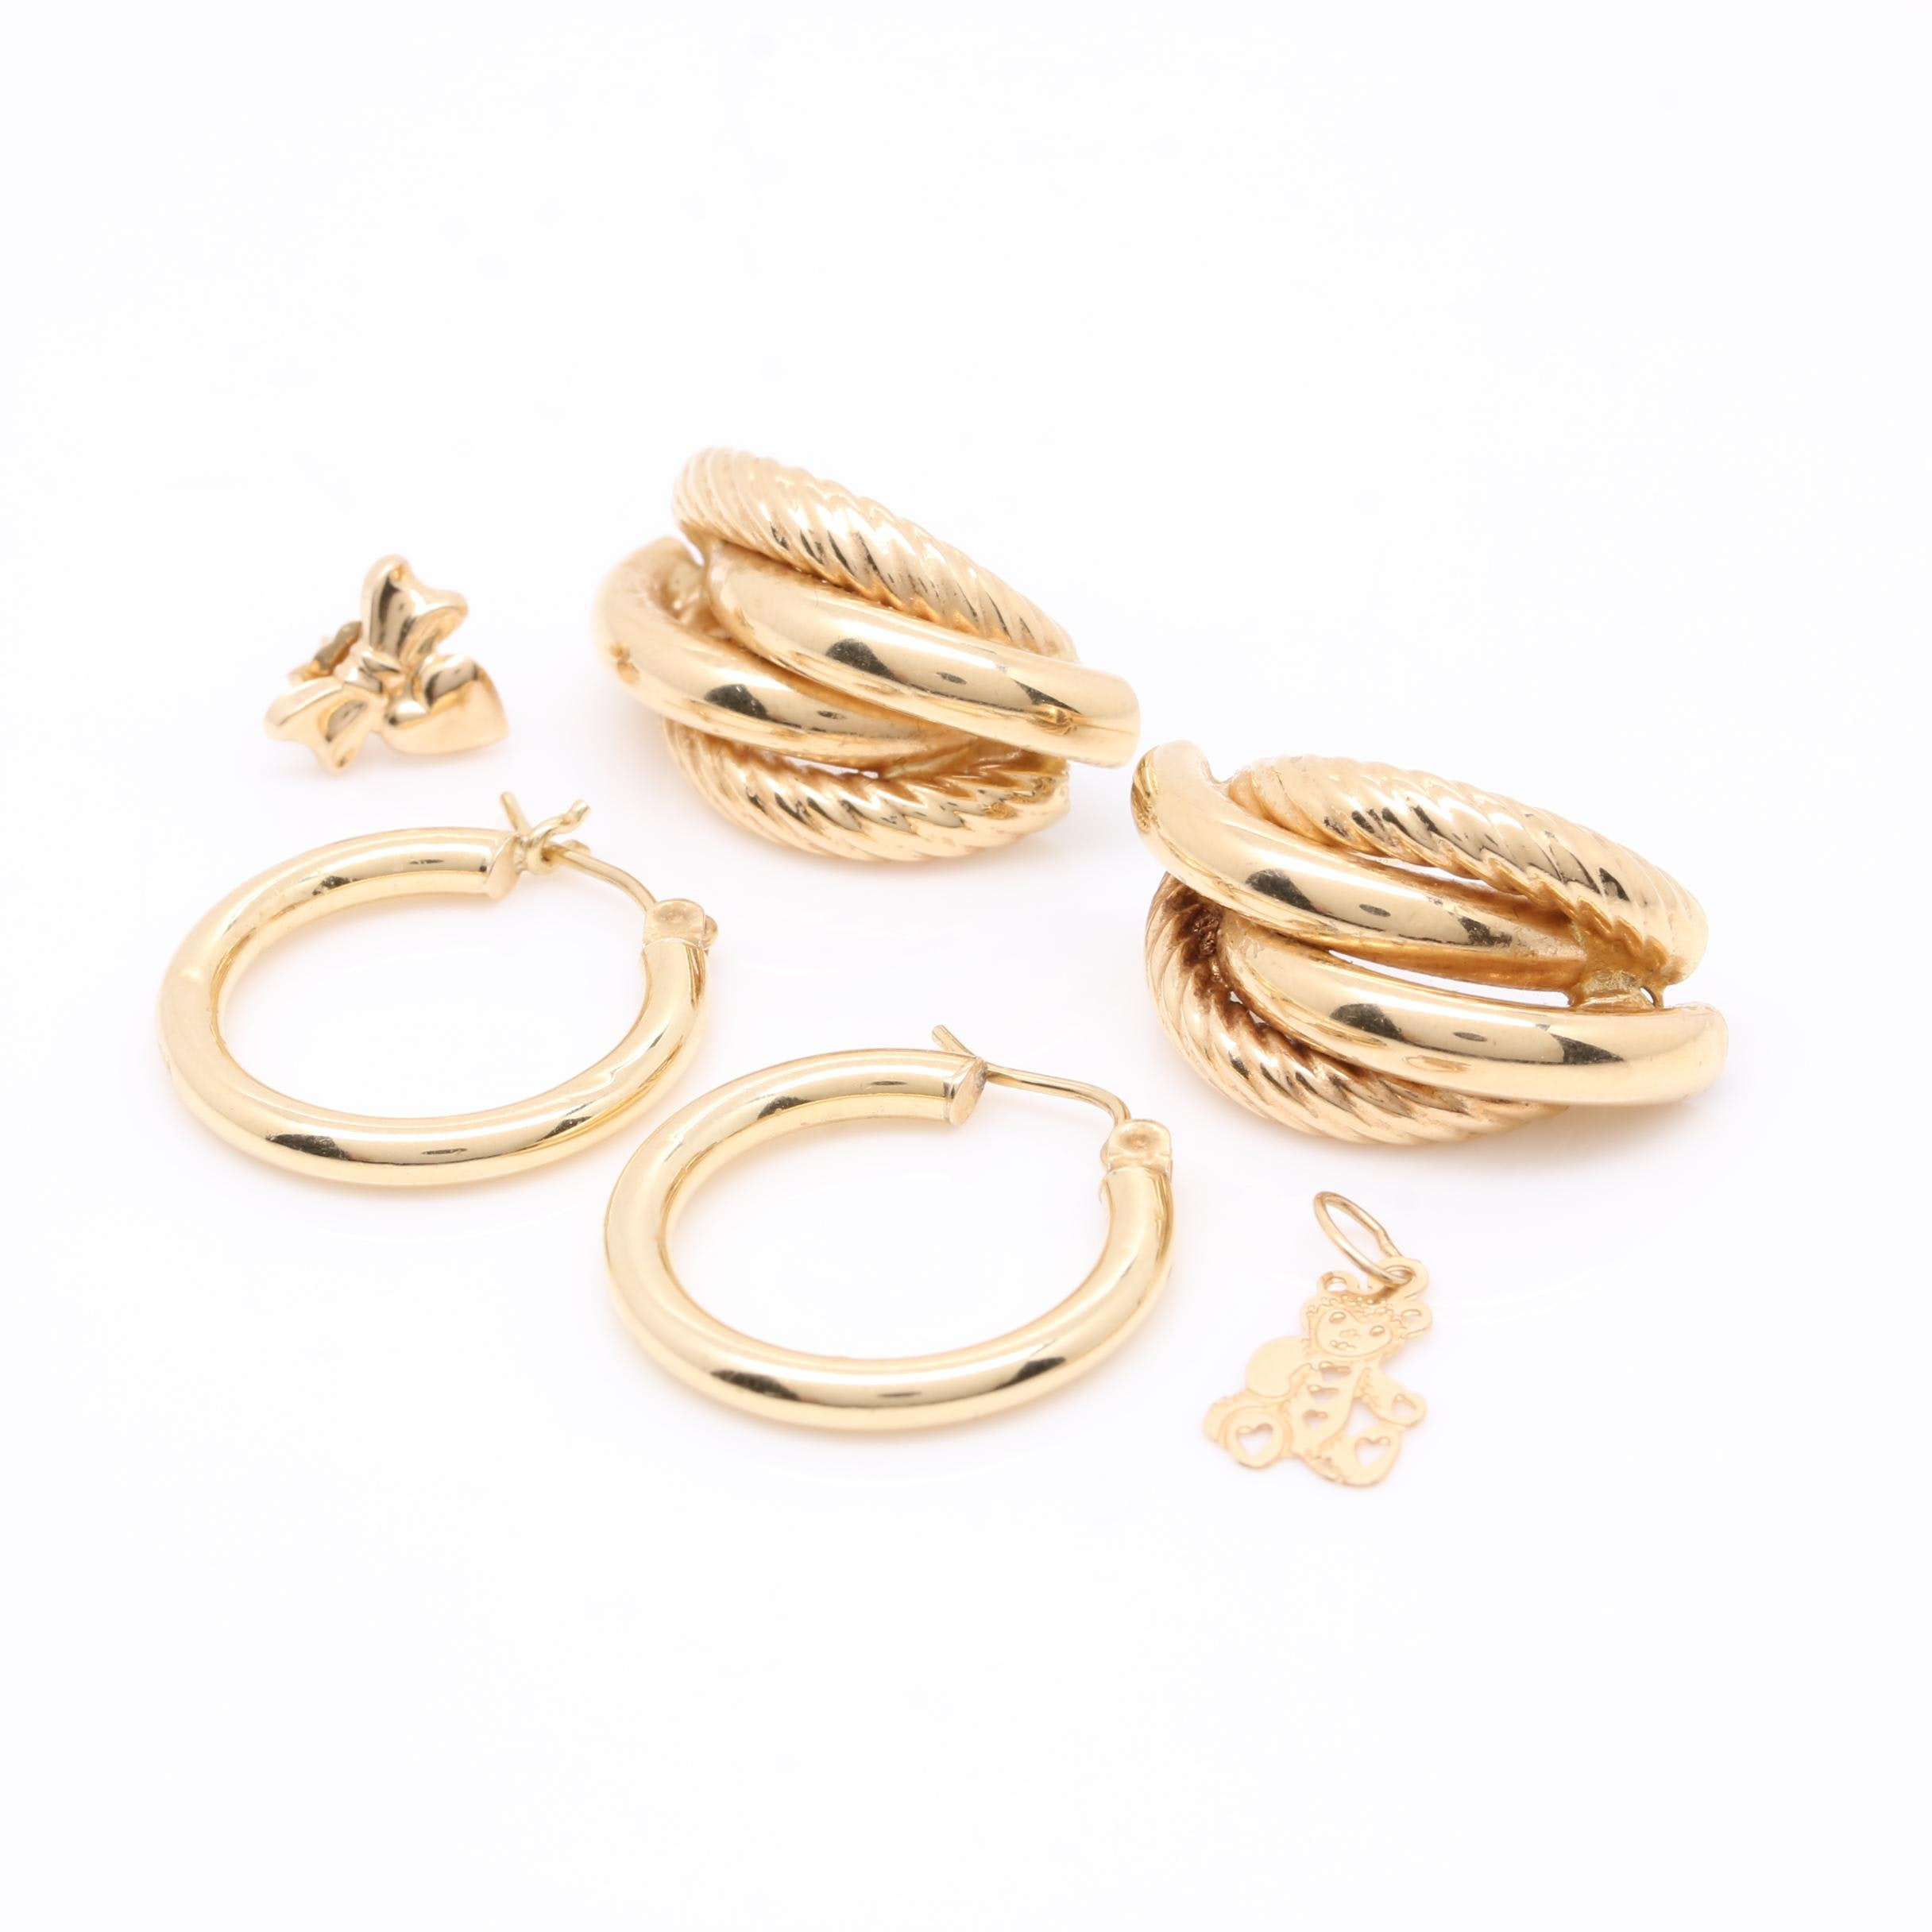 14K Yellow Gold Jewelry Assortment Including Earrings